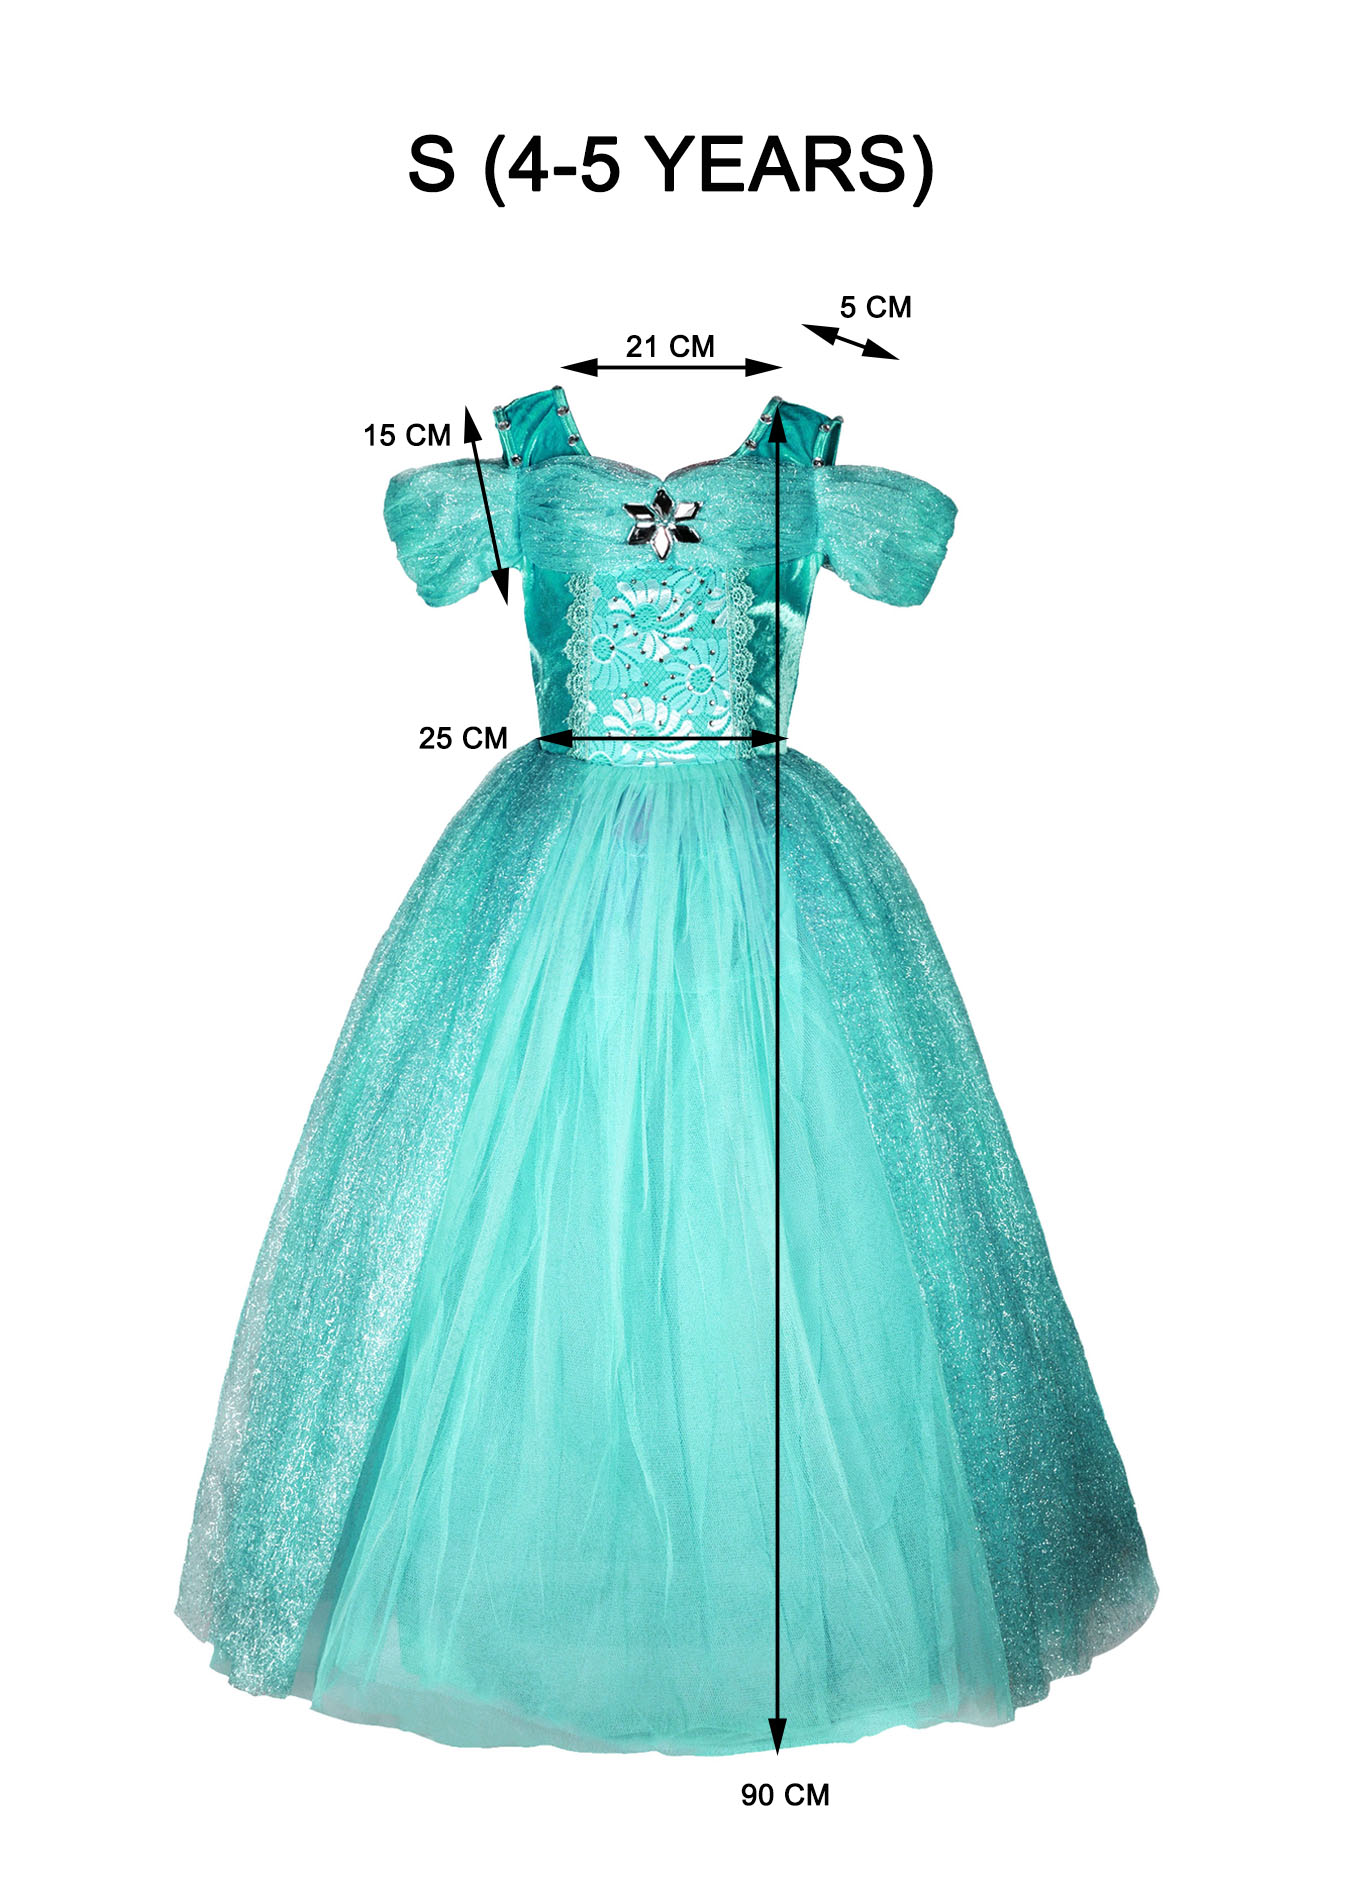 Sparkly Princess Turquoise S.jpg